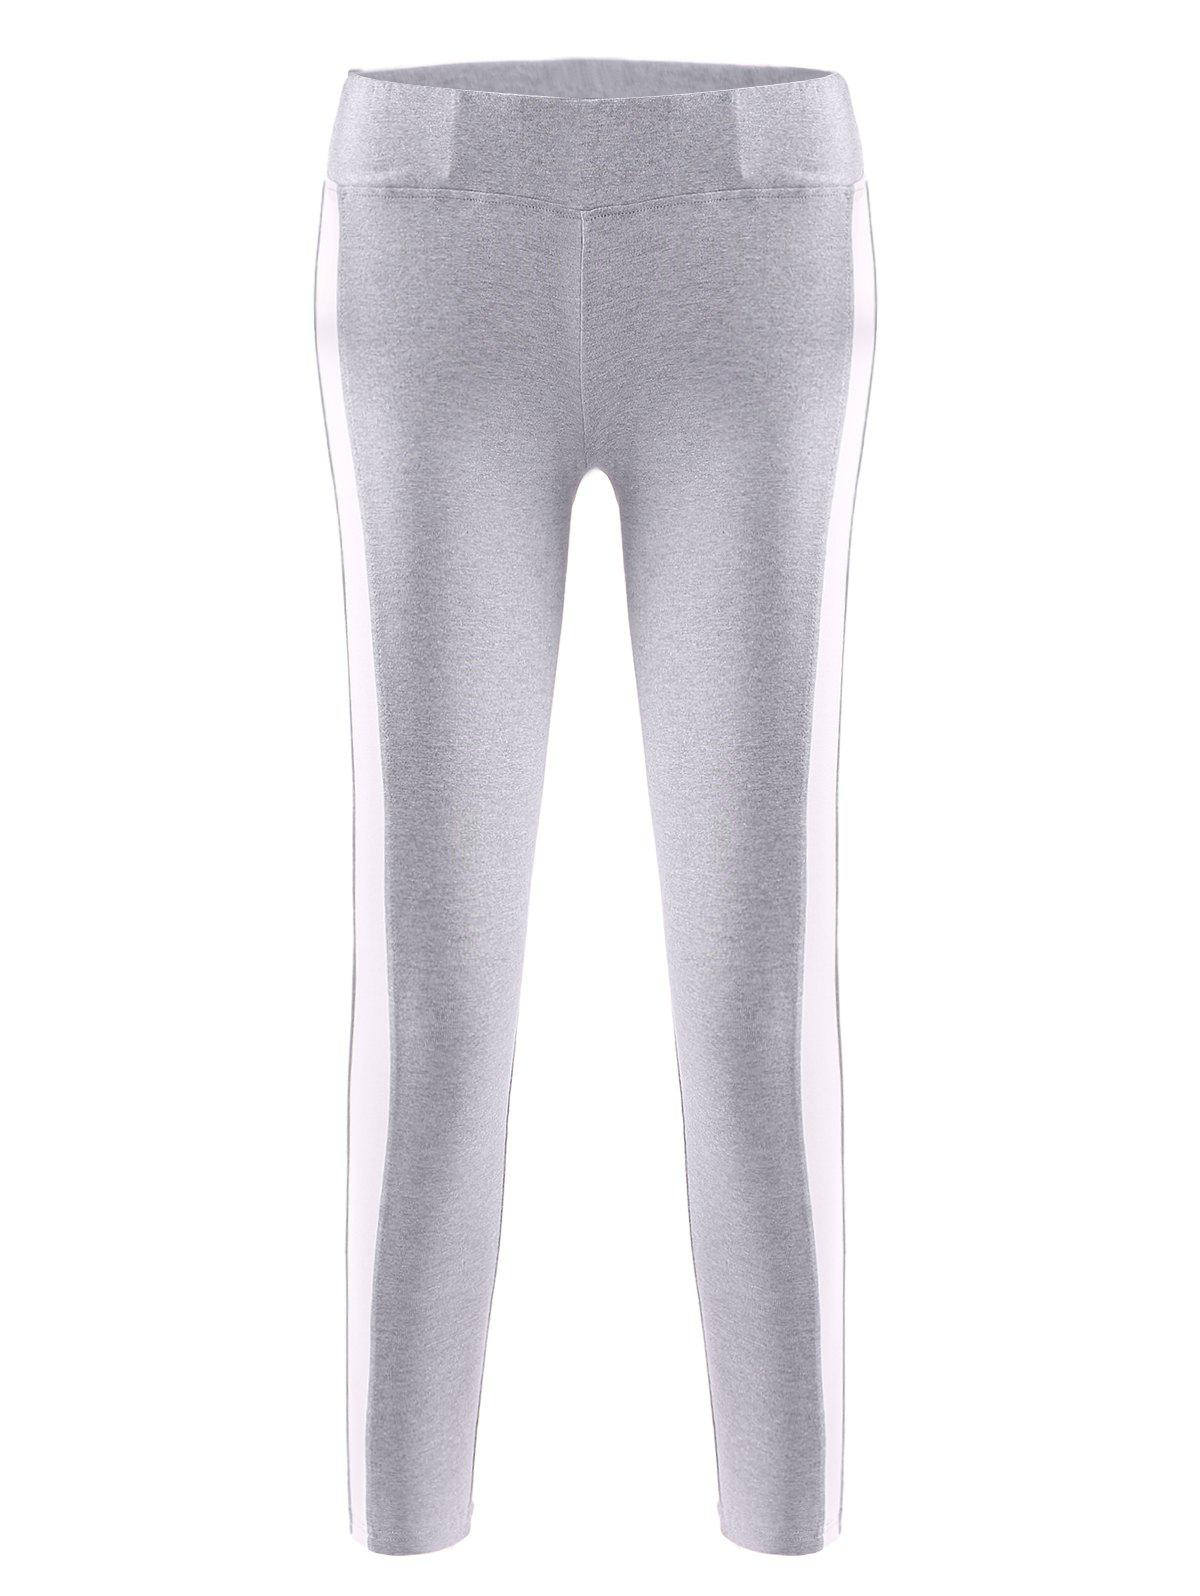 Active High Waist Side Hit Color Bodycon Stretchy Sport Pants For Women - LIGHT GRAY S